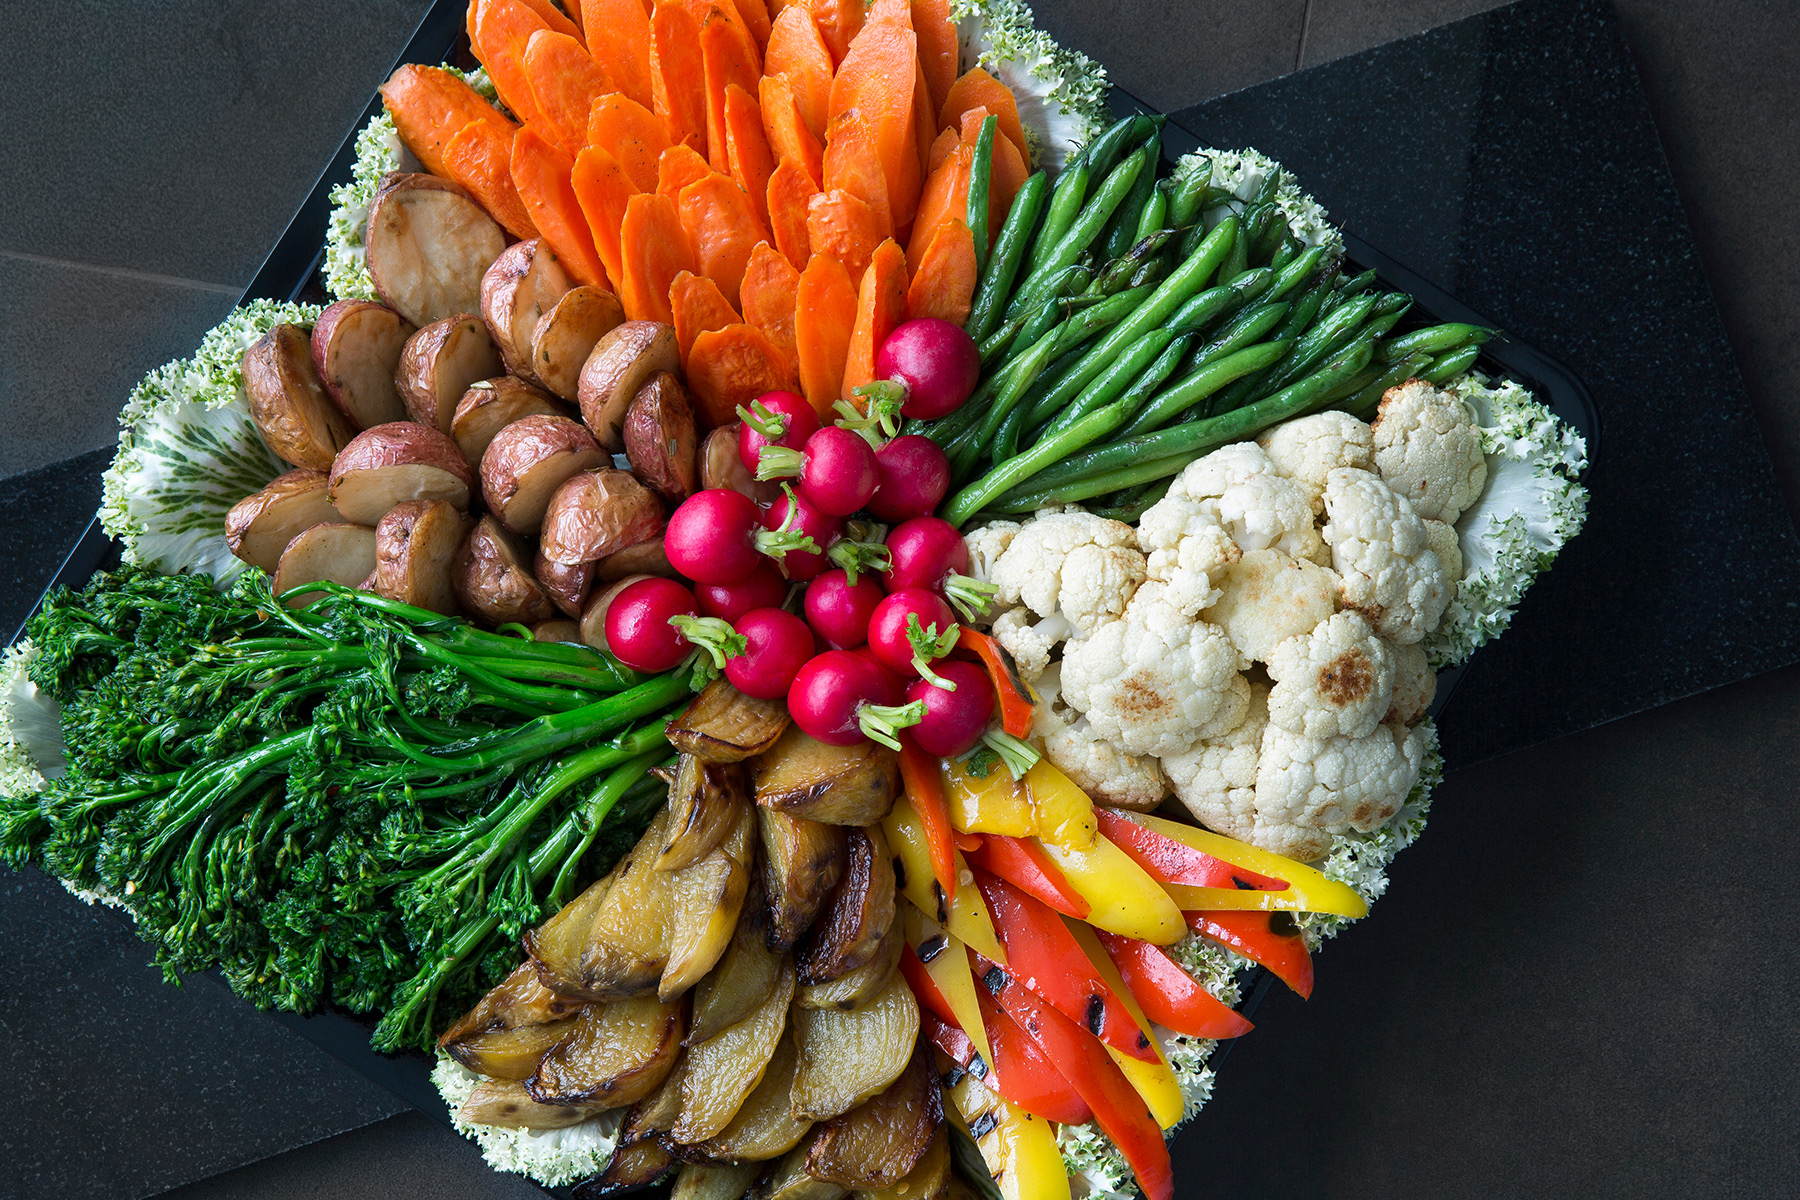 Roasted Seasonal Vegetables Platter